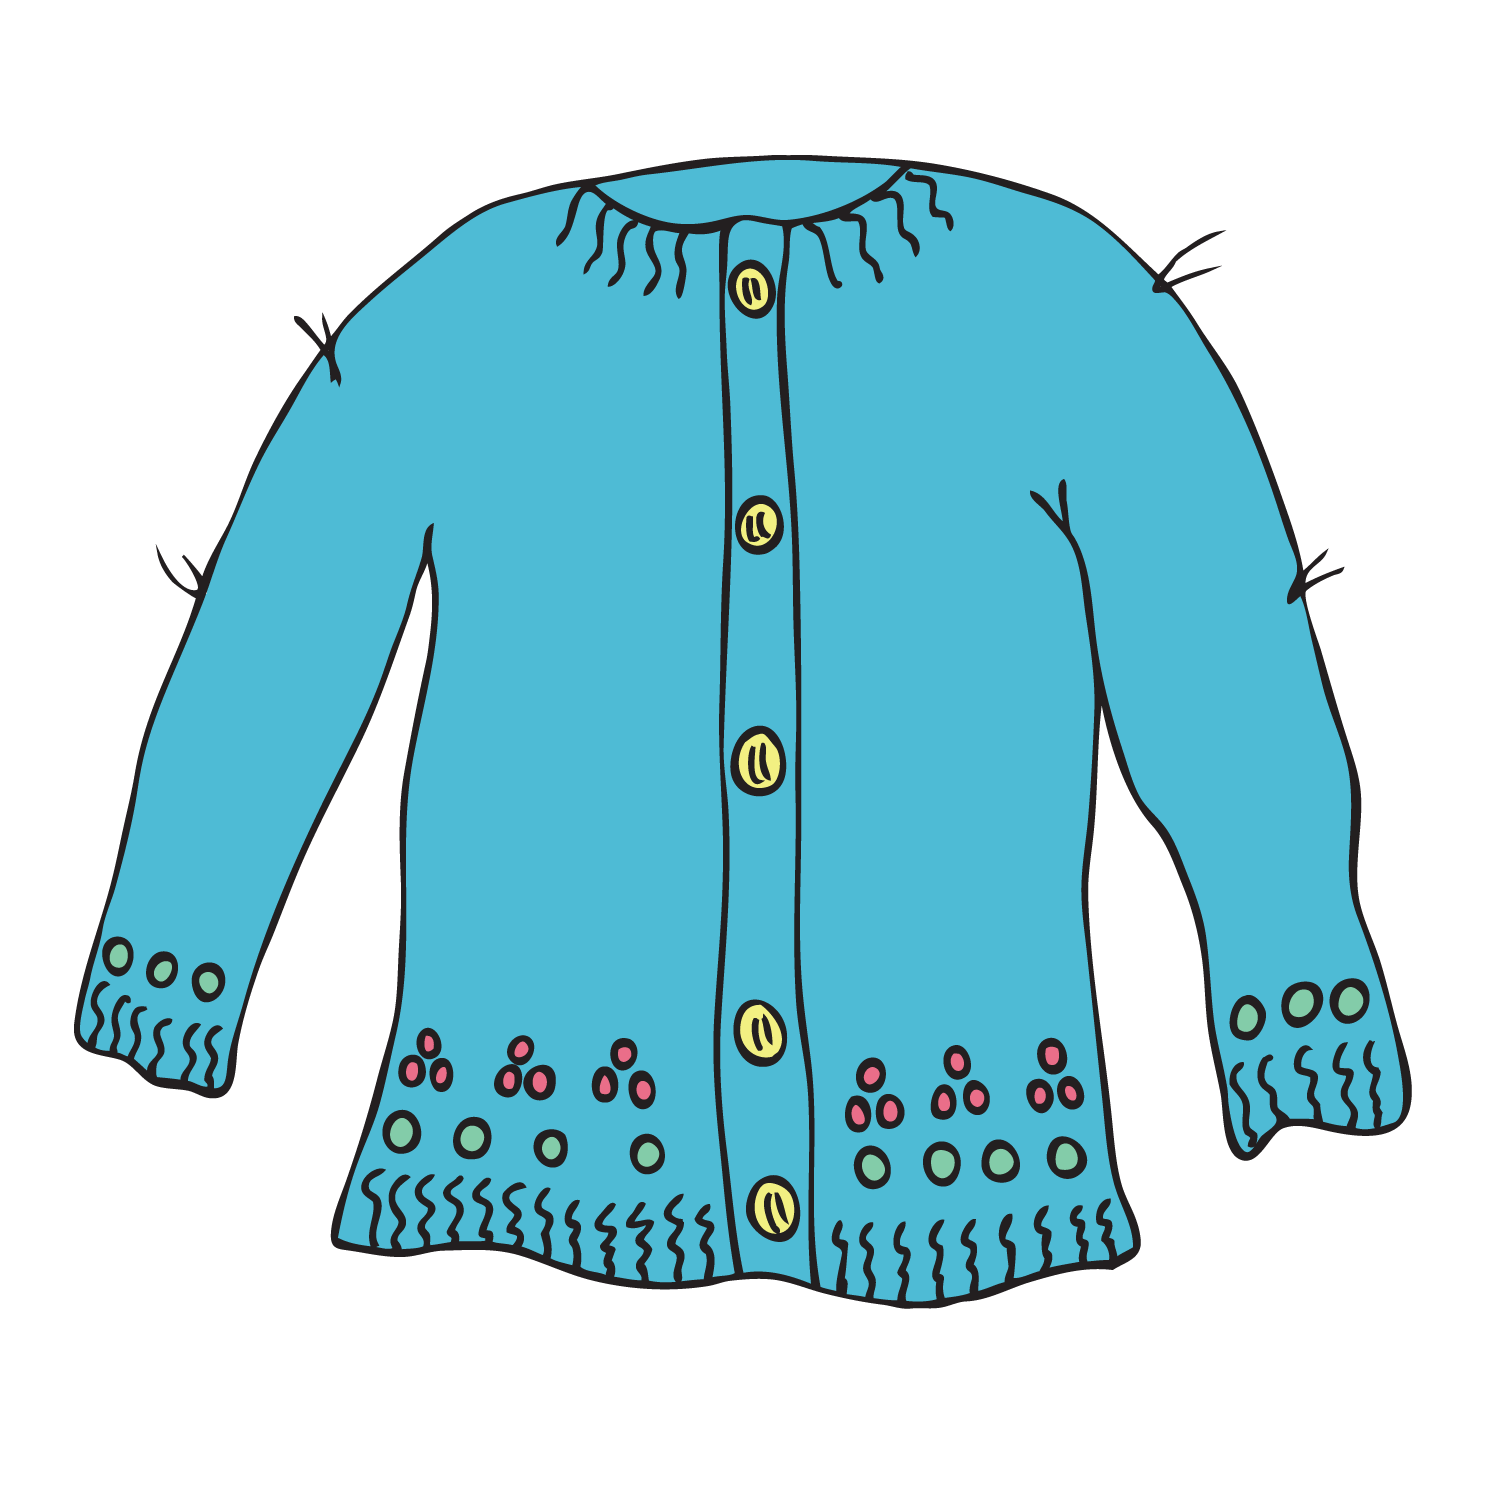 Snow Pants Cliparts on School Jumper Clipart